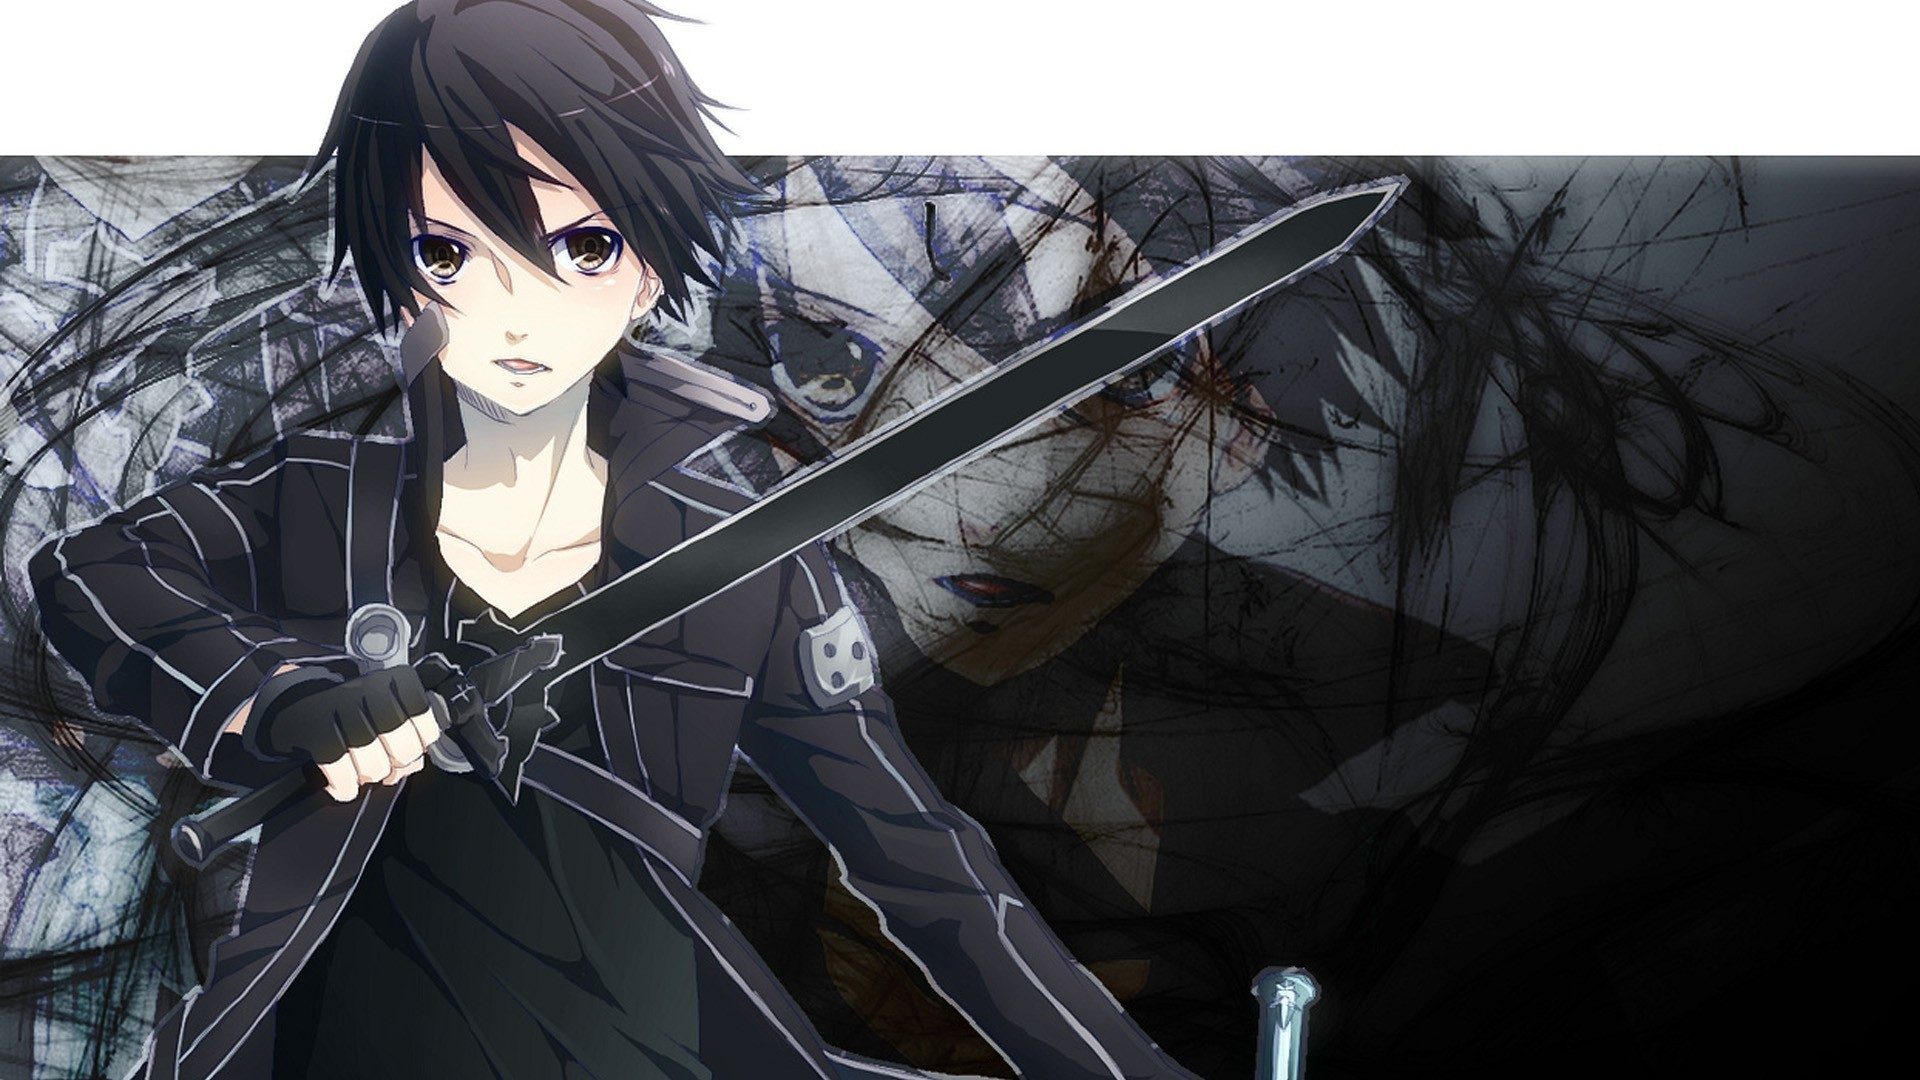 2288 Sword Art Online HD Wallpapers | Backgrounds – Wallpaper Abyss – Page 5